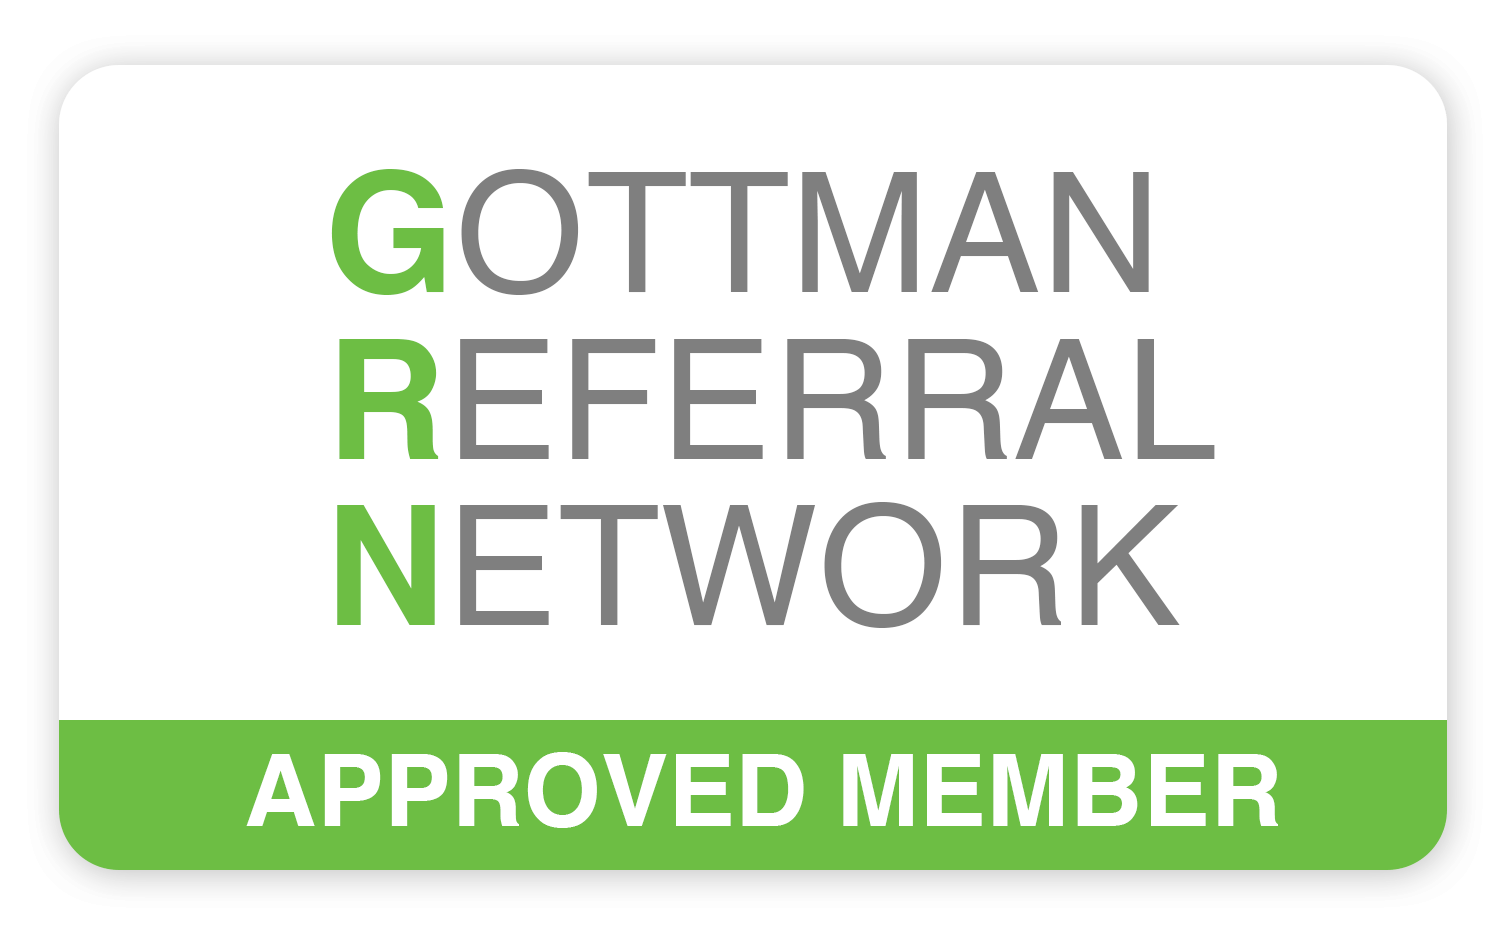 Evonne Noble's profile on the Gottman Referral Network